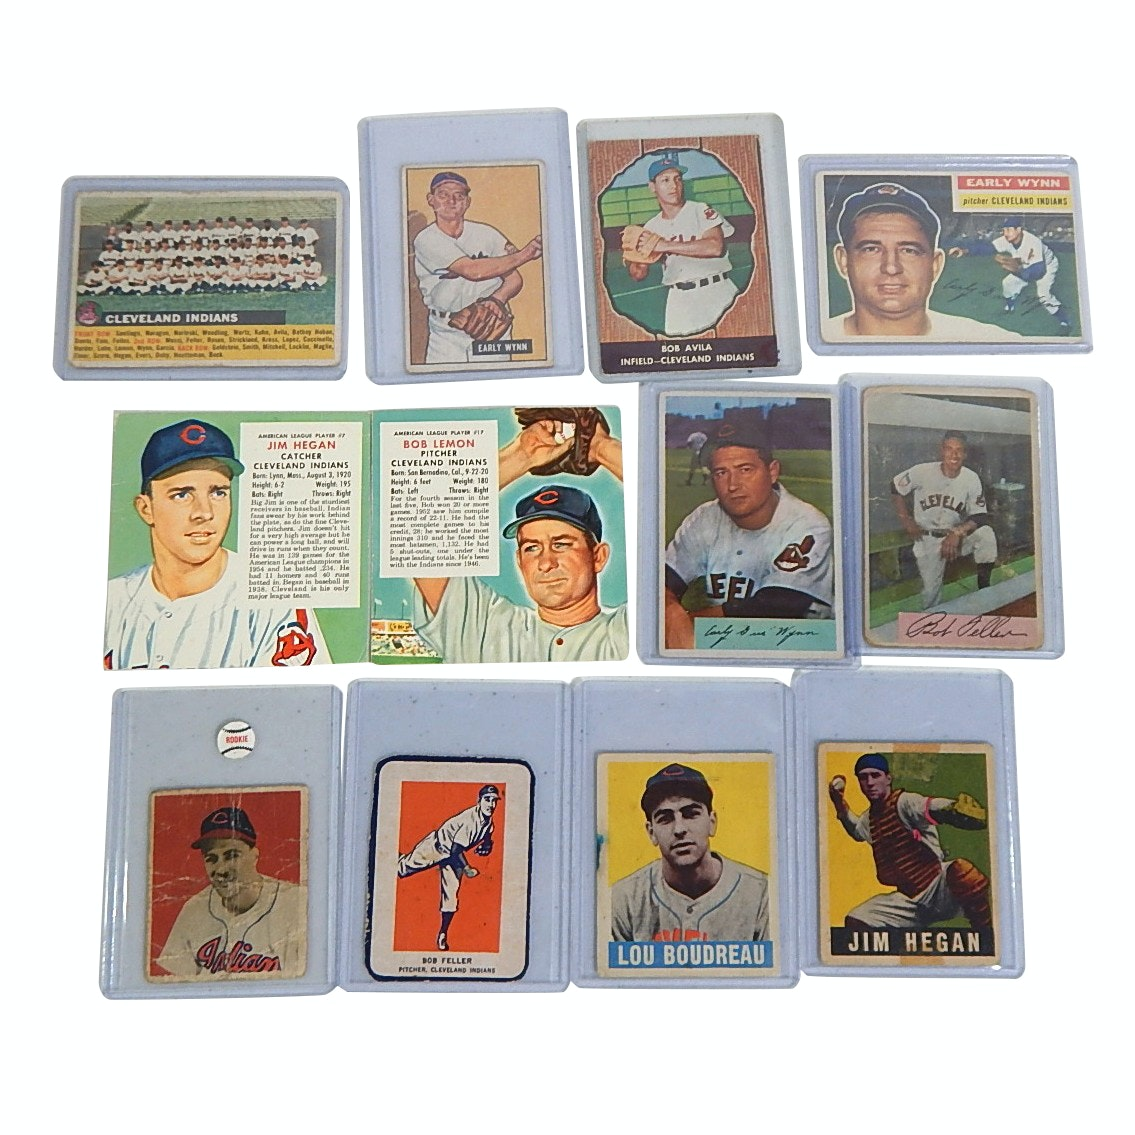 1940s/50s Cleveland Indians Baseball Cards with Bob Feller, Lou Boudreau Rookie